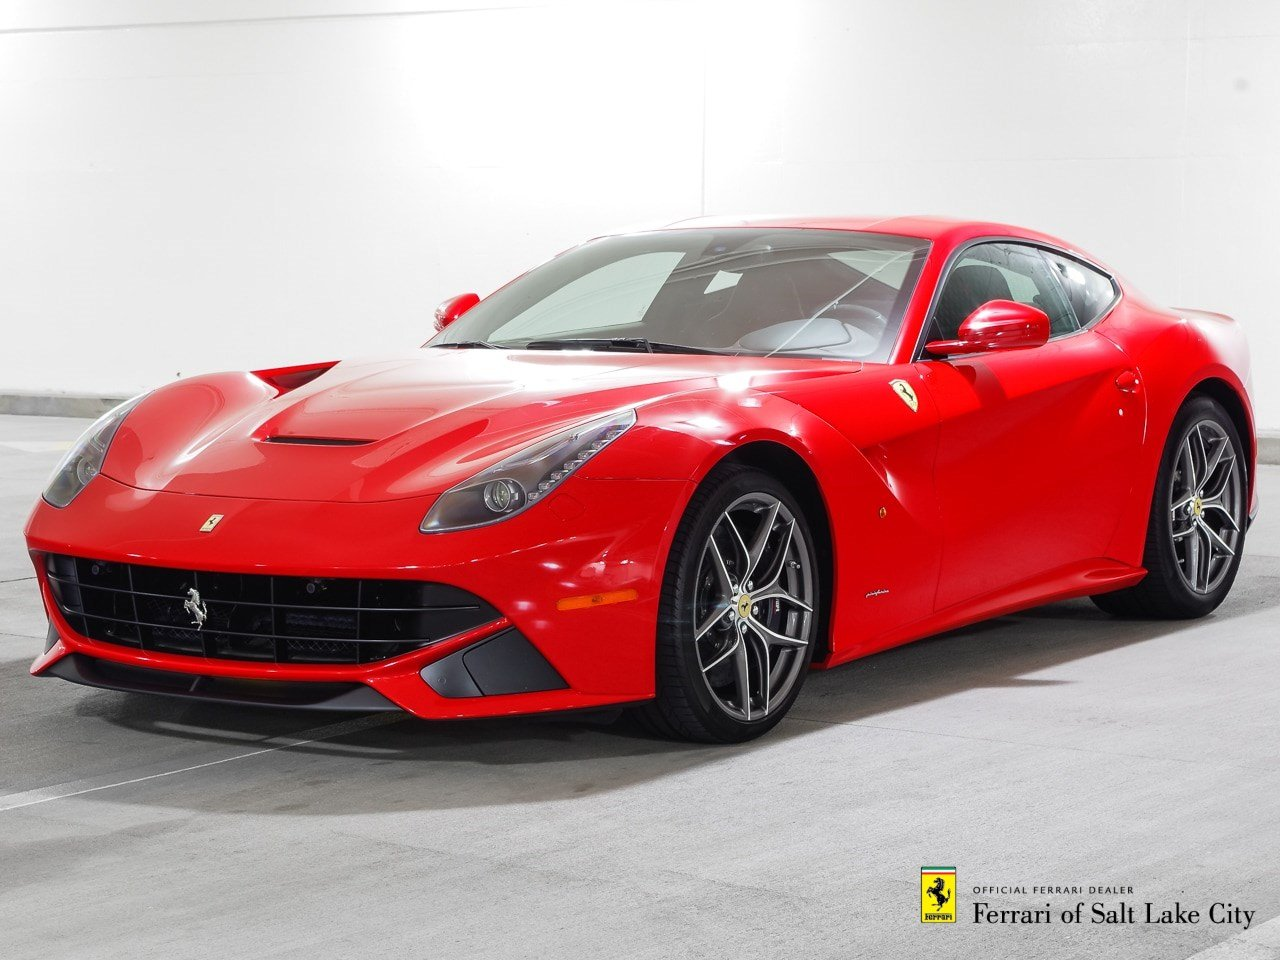 certified pre owned 2013 ferrari f12 berlinetta 2dr car in salt lake city 1ku0274 ferrari of. Black Bedroom Furniture Sets. Home Design Ideas